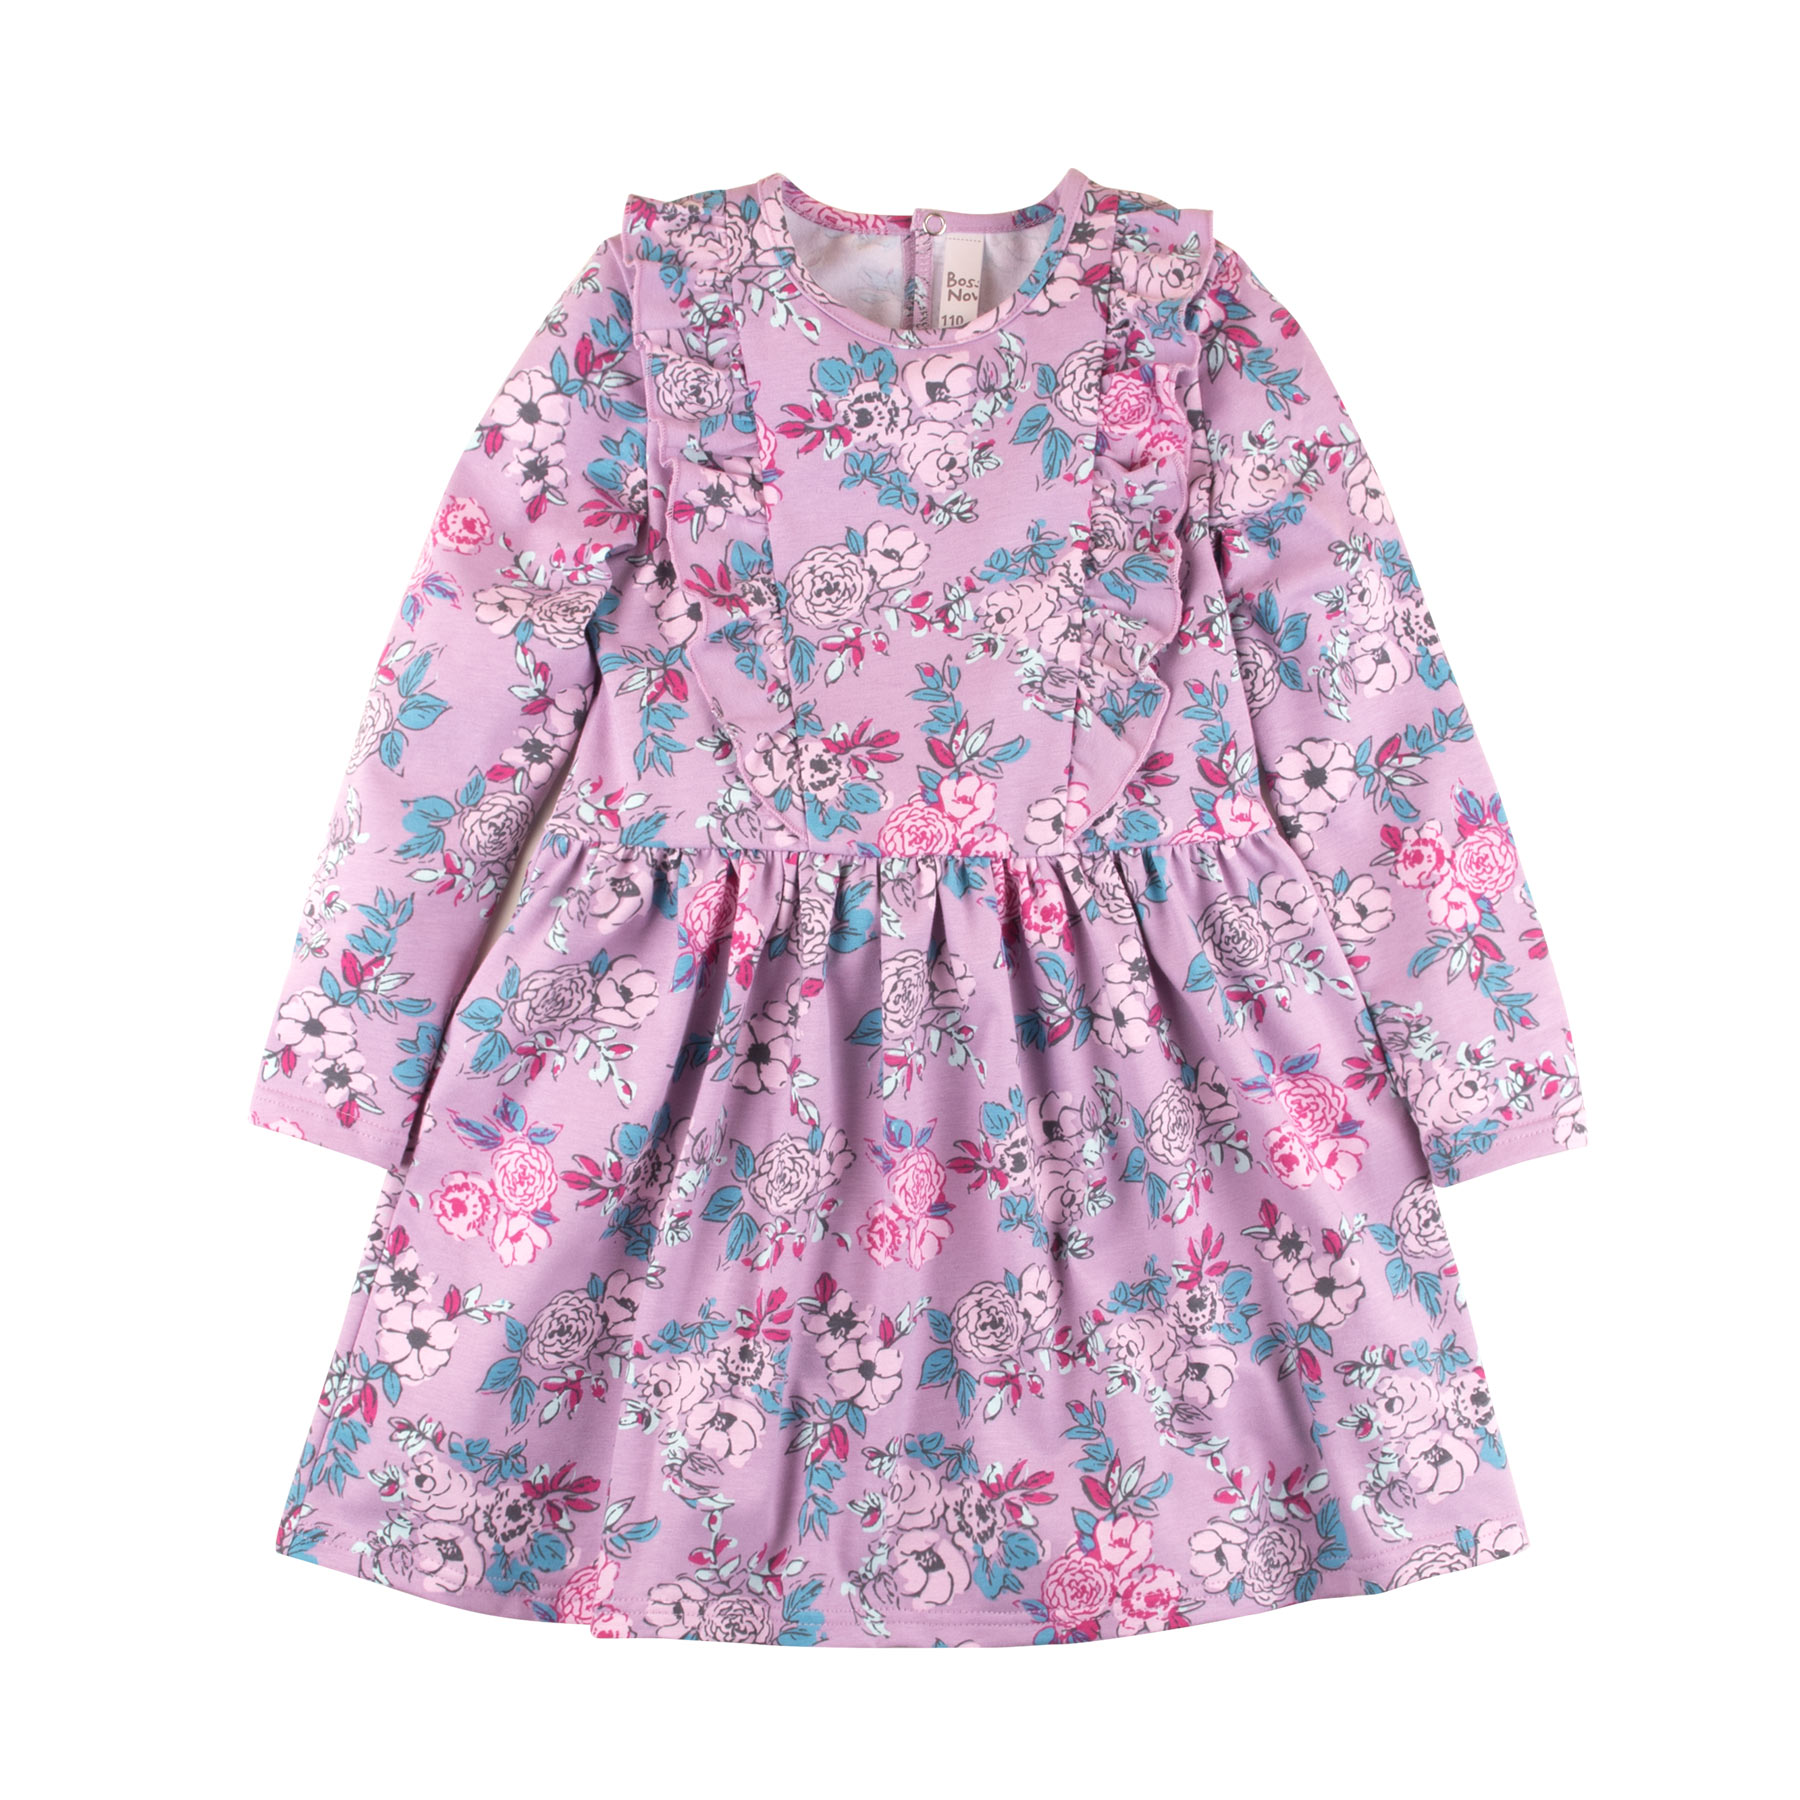 Dresses BOSSA NOVA 148M-187c Maya baby dress for a girl tunic clothes clothing Cotton